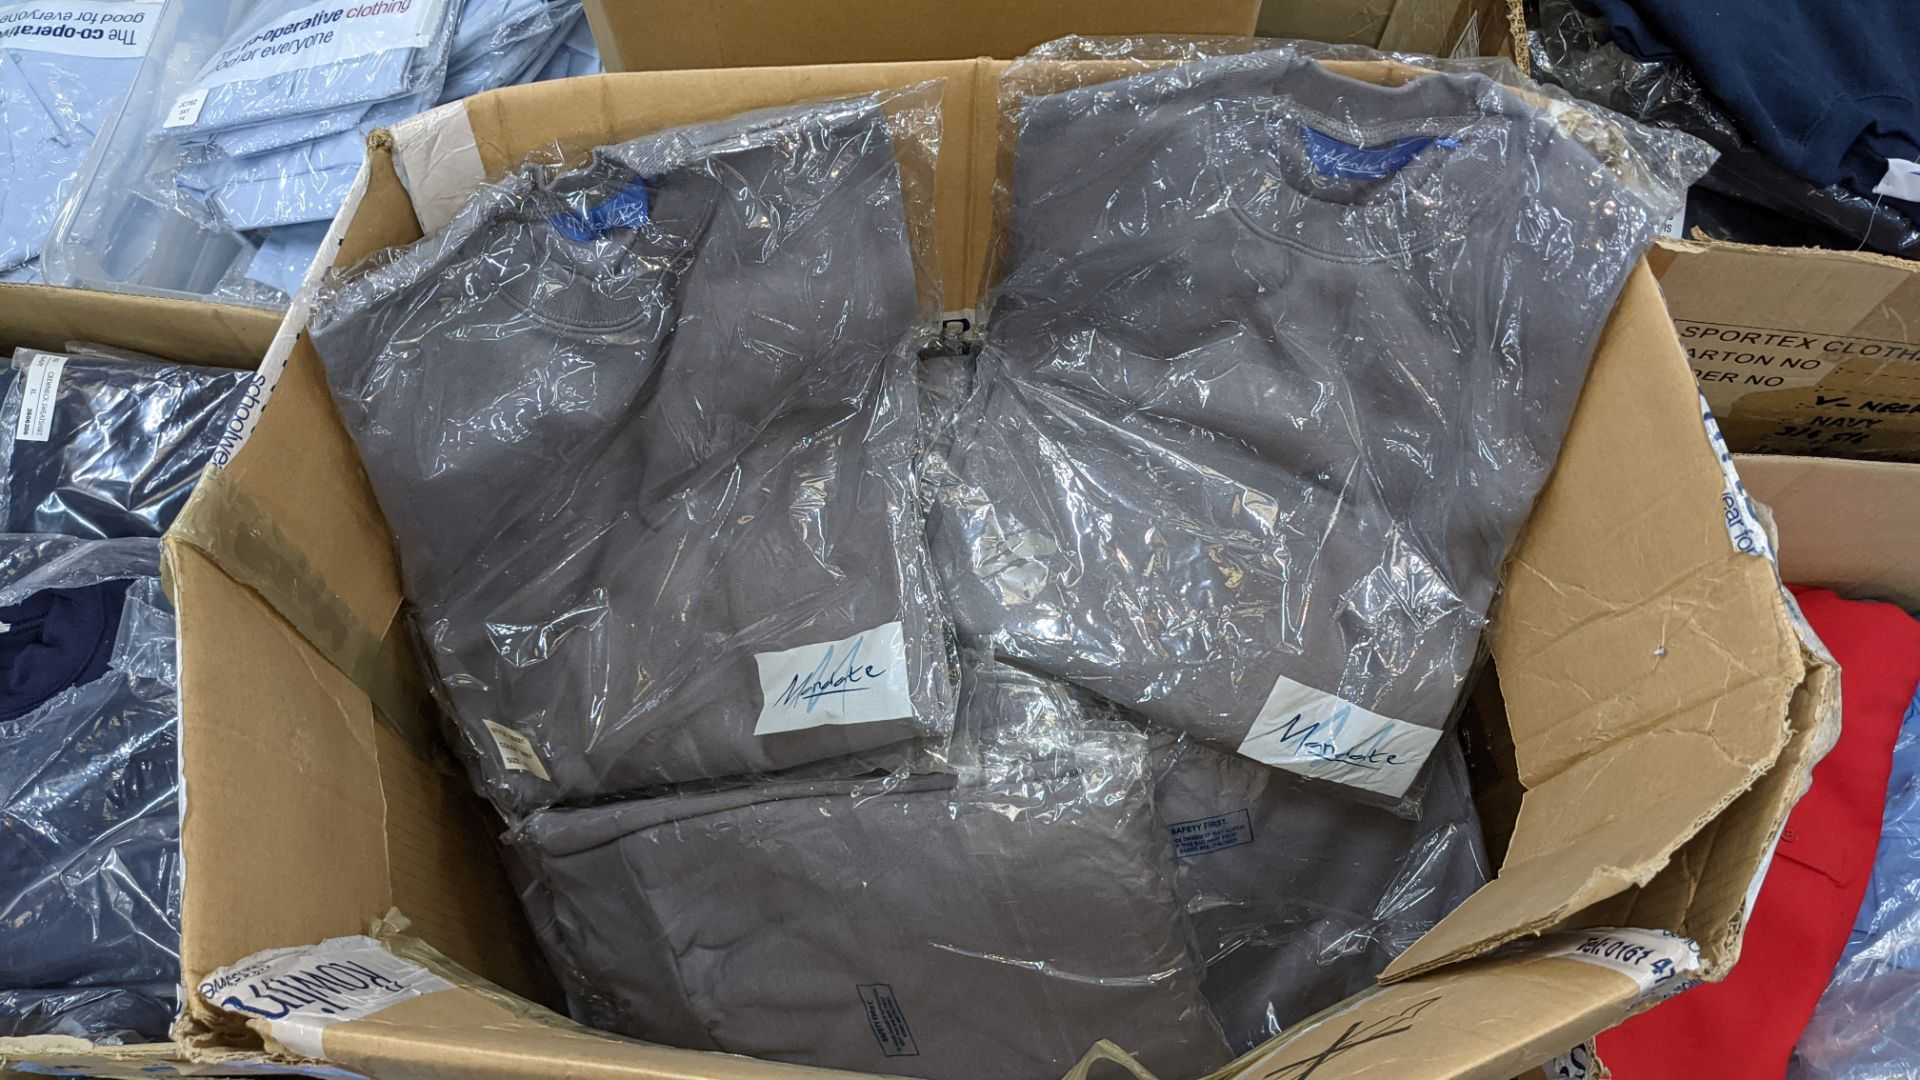 Approx 32 off pale grey sweatshirts - 1 box - Image 3 of 4